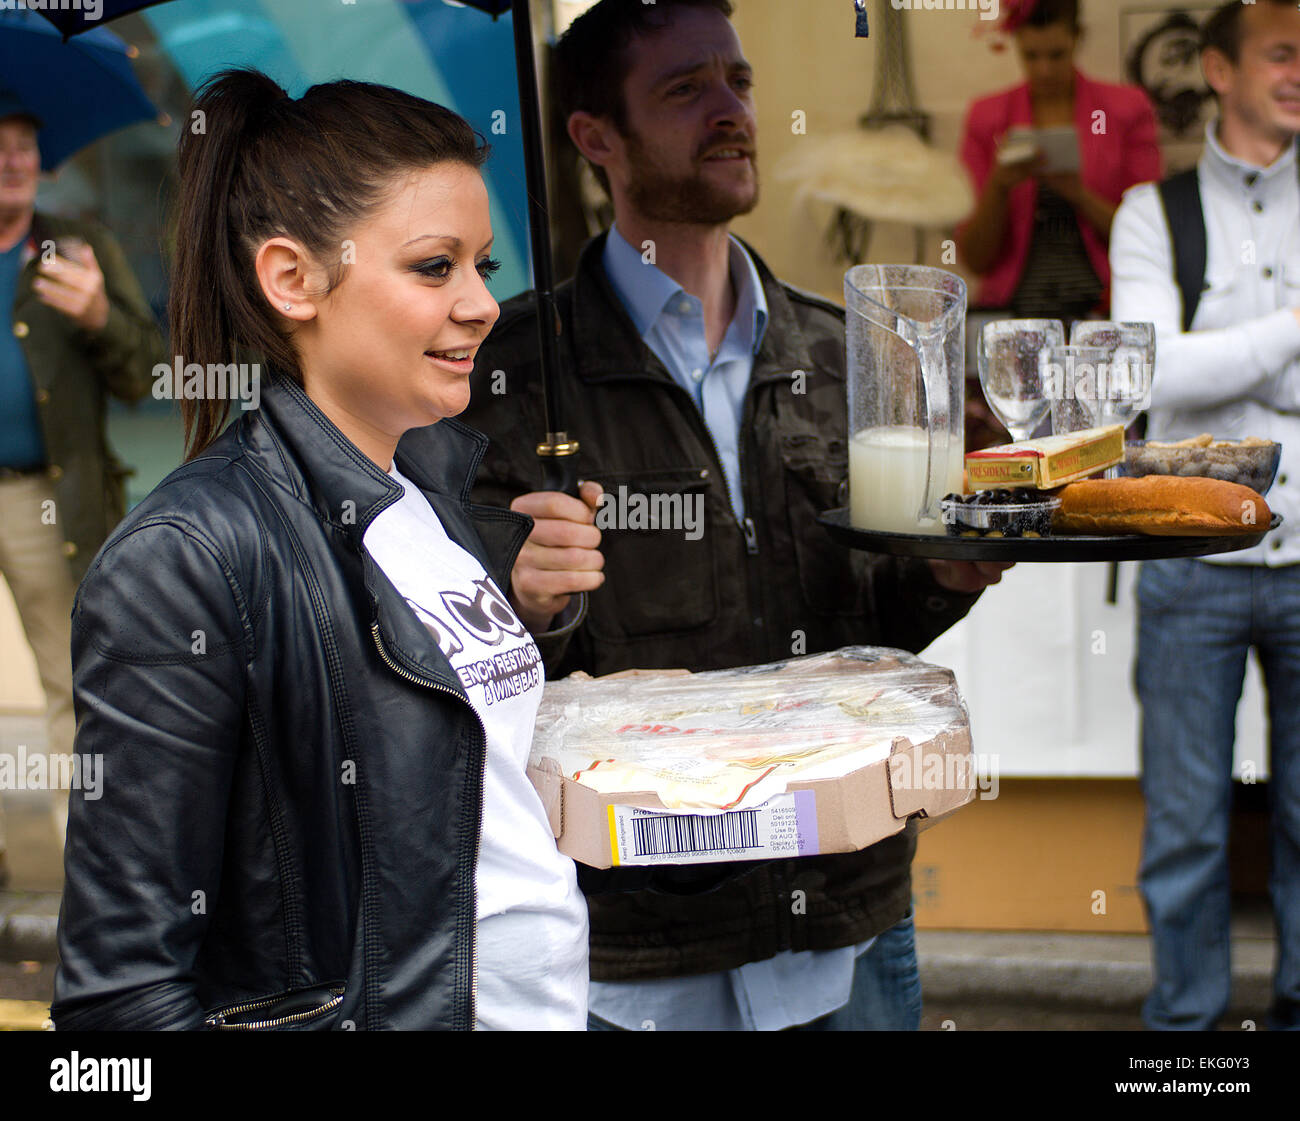 An event near Borough Market on Bastille Day is a race for waiters and waitresses carrying trays of food and wine. - Stock Image